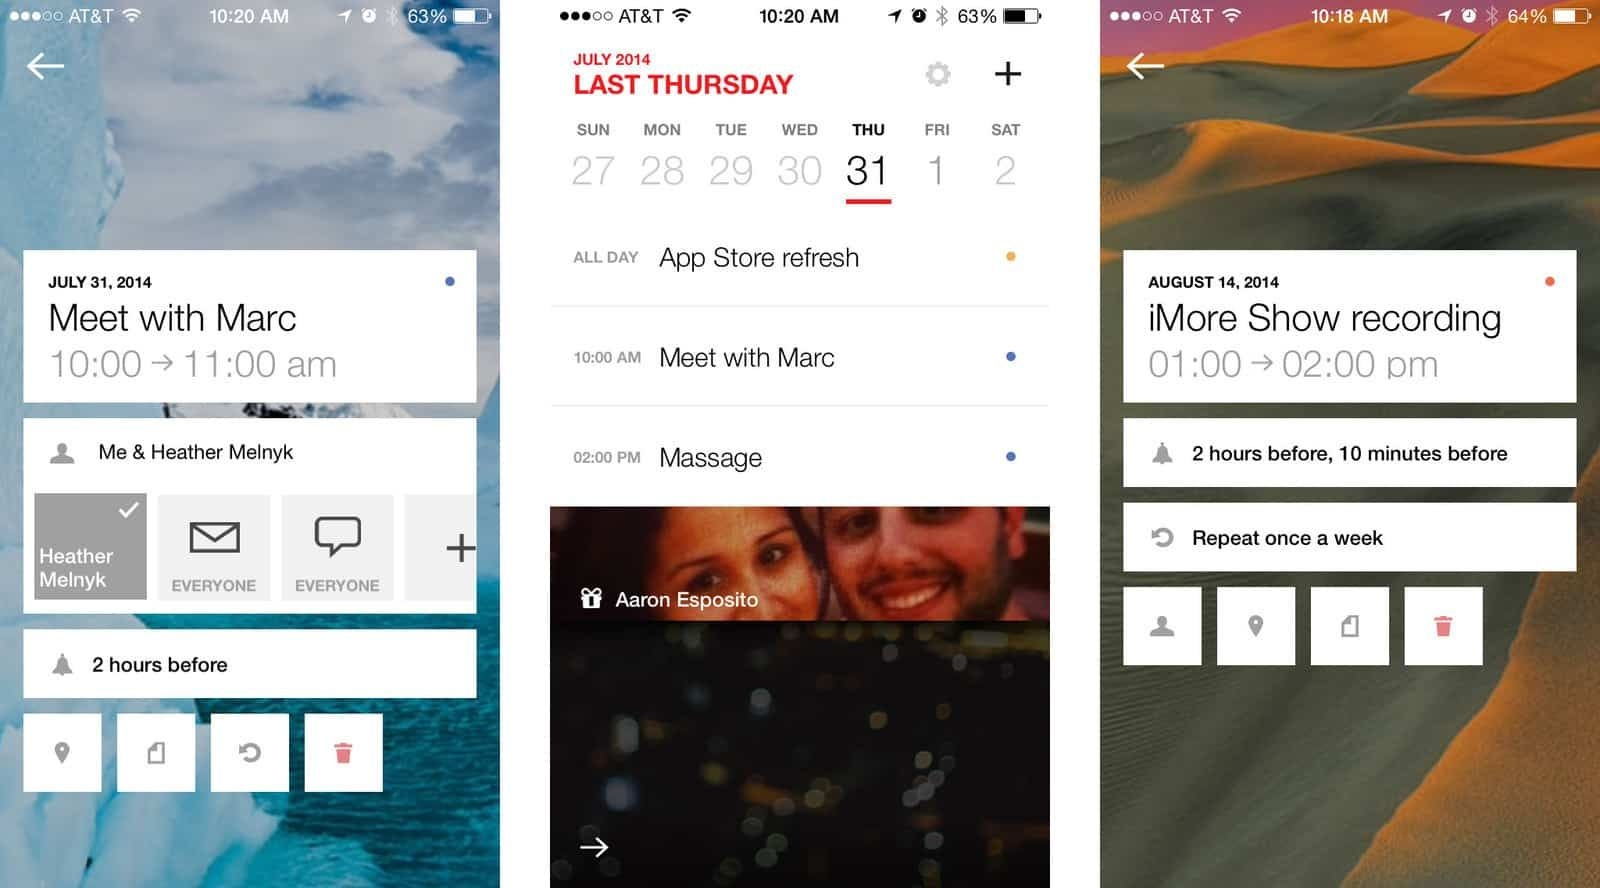 10 Best Calendar Apps To Stay On Track In 2020